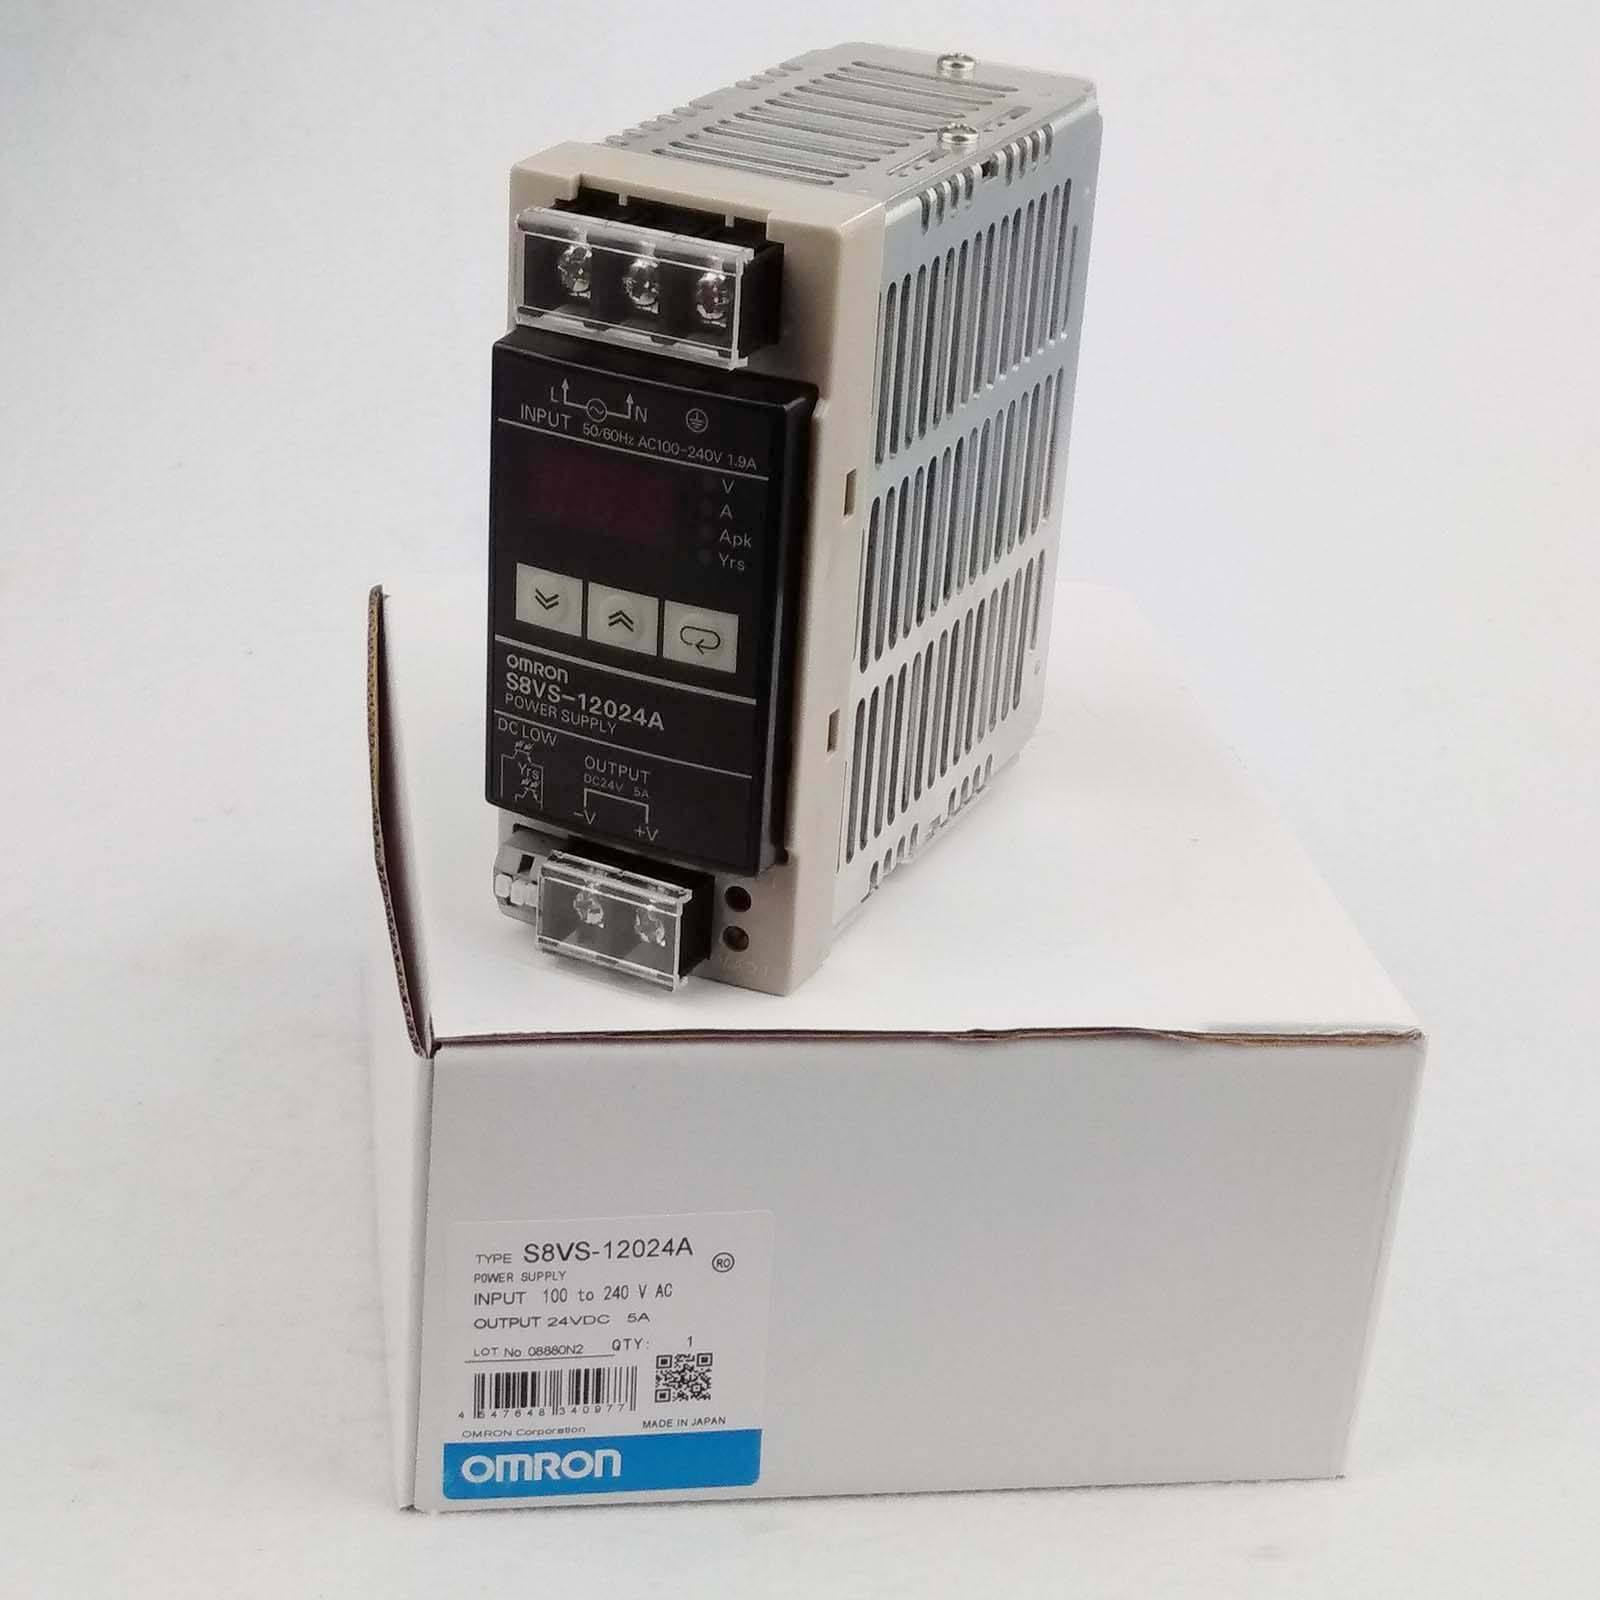 New OMRON S8VS-12024A Switching Power Supply S8VS12024A A-04590